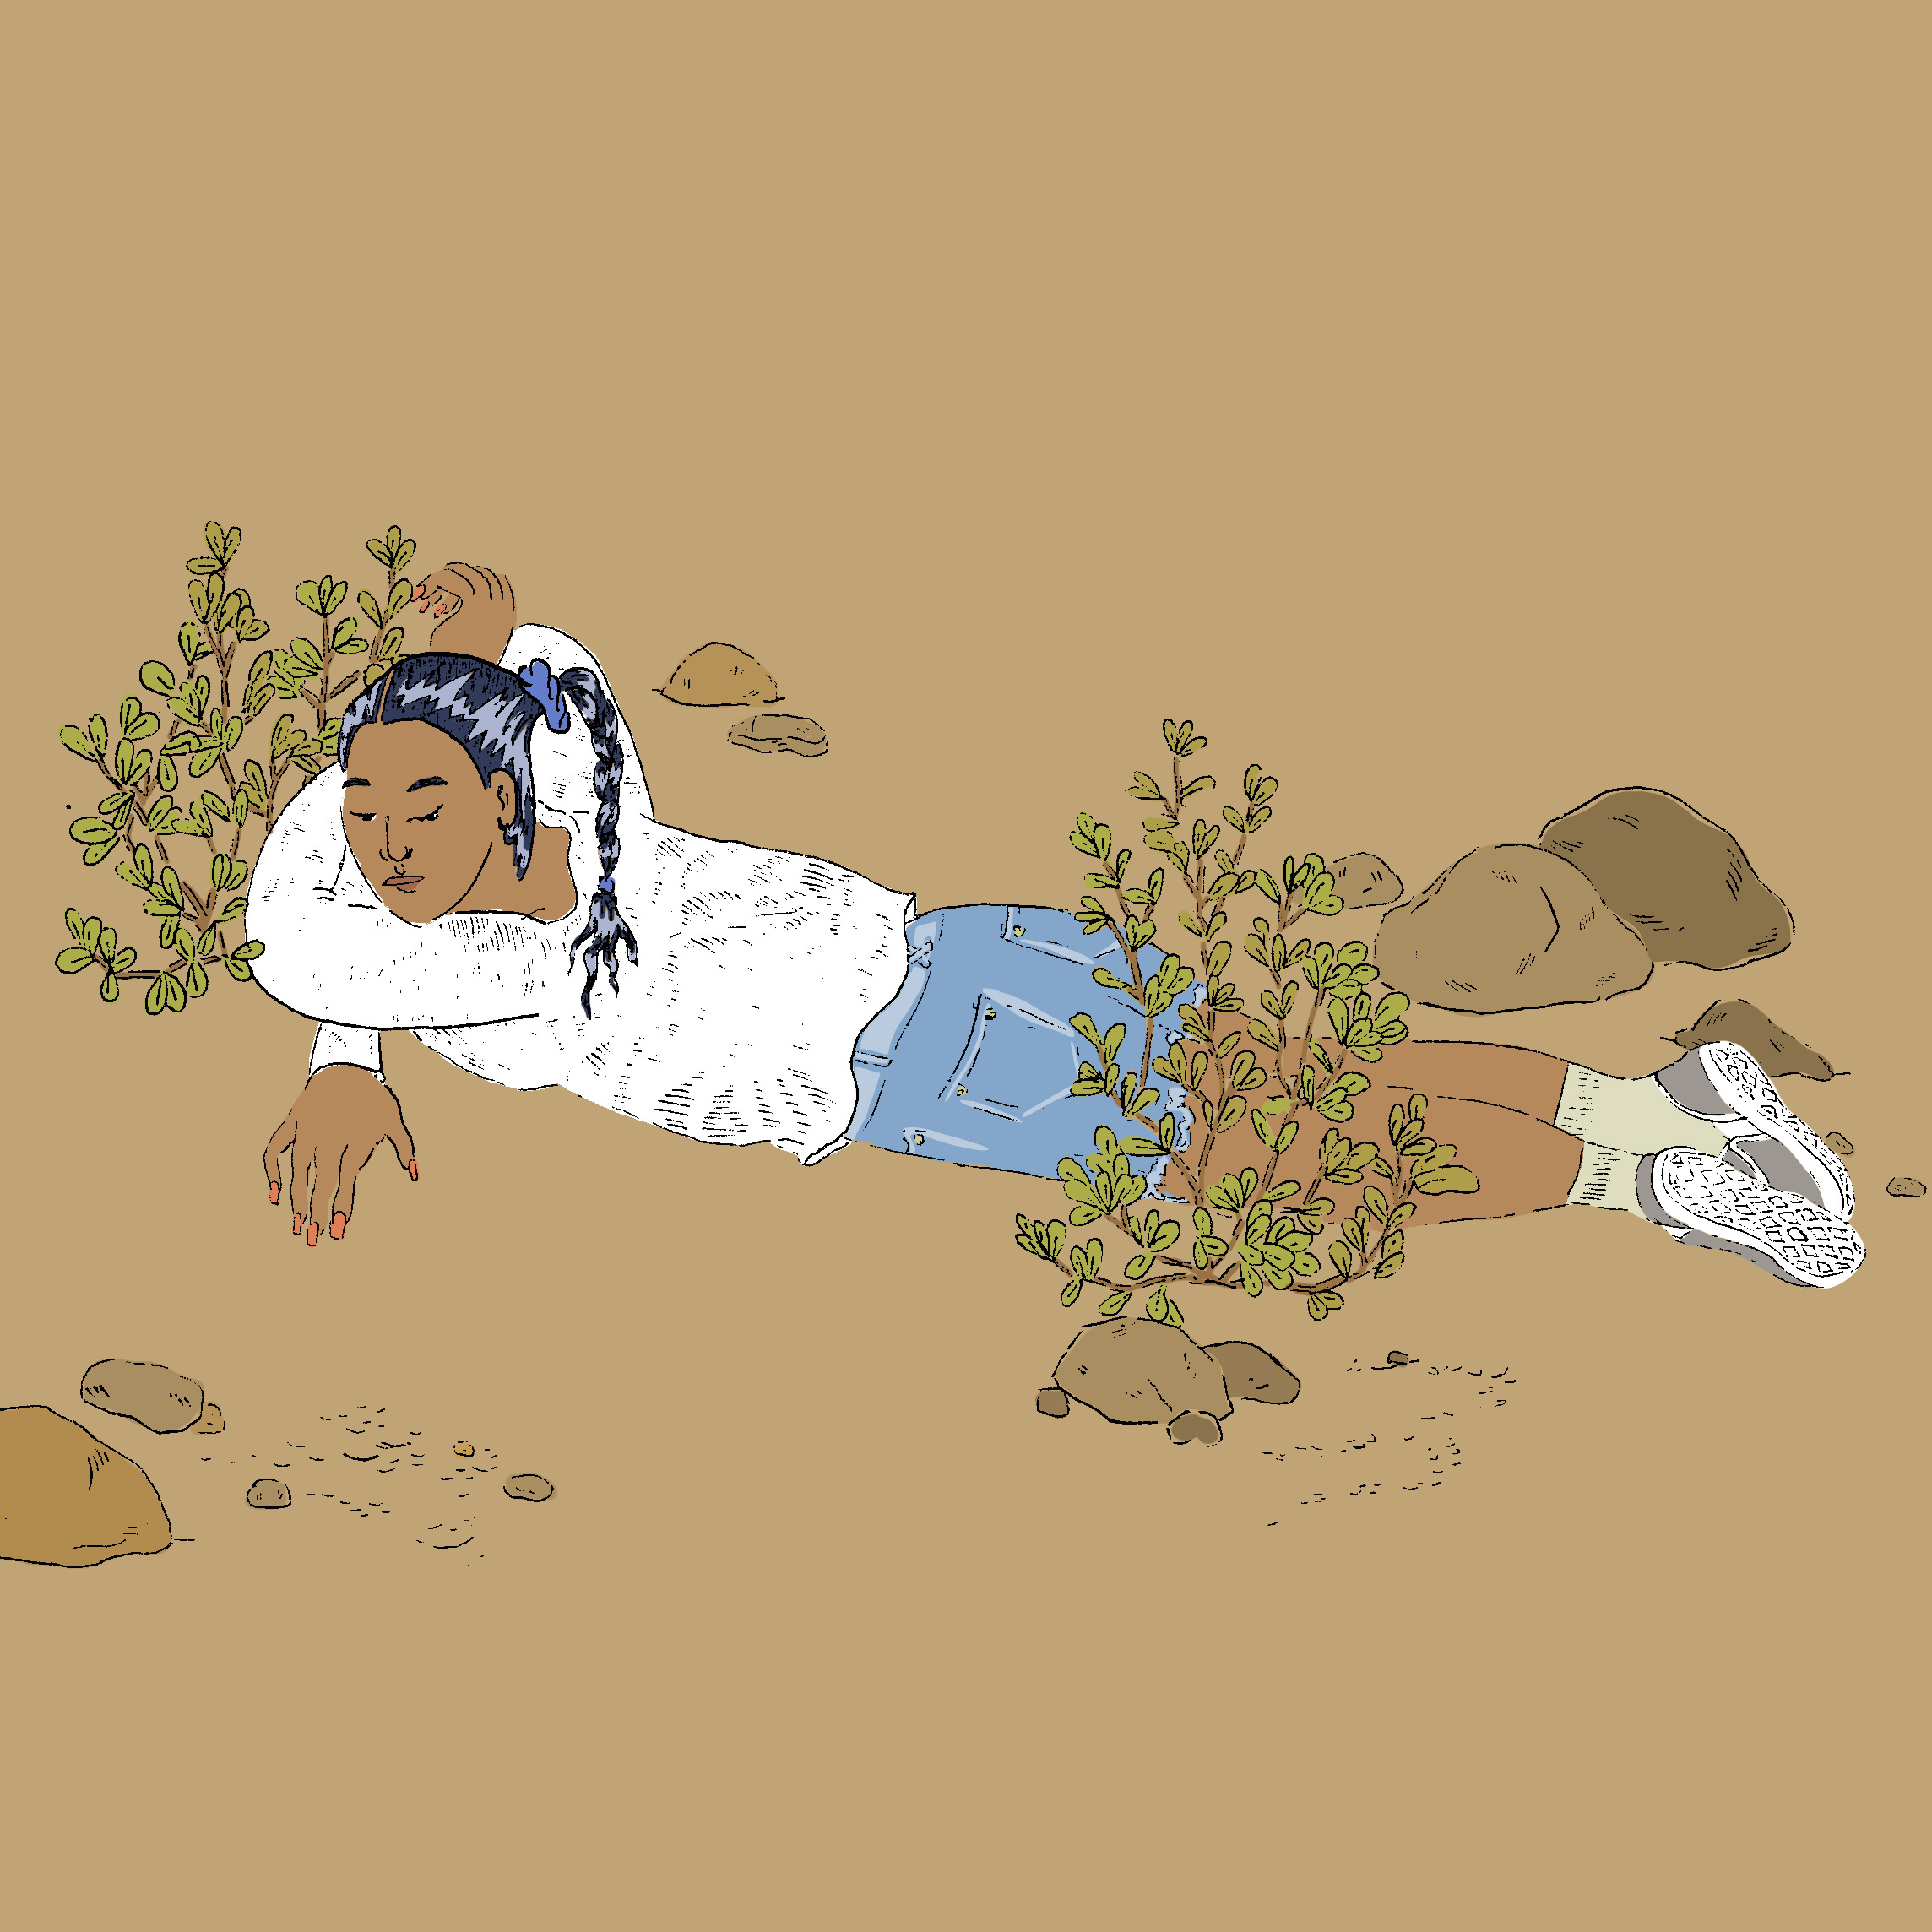 I planted my feet in the soil and Never go entirely, Pen and Ink, Digital Color, 2019.jpg